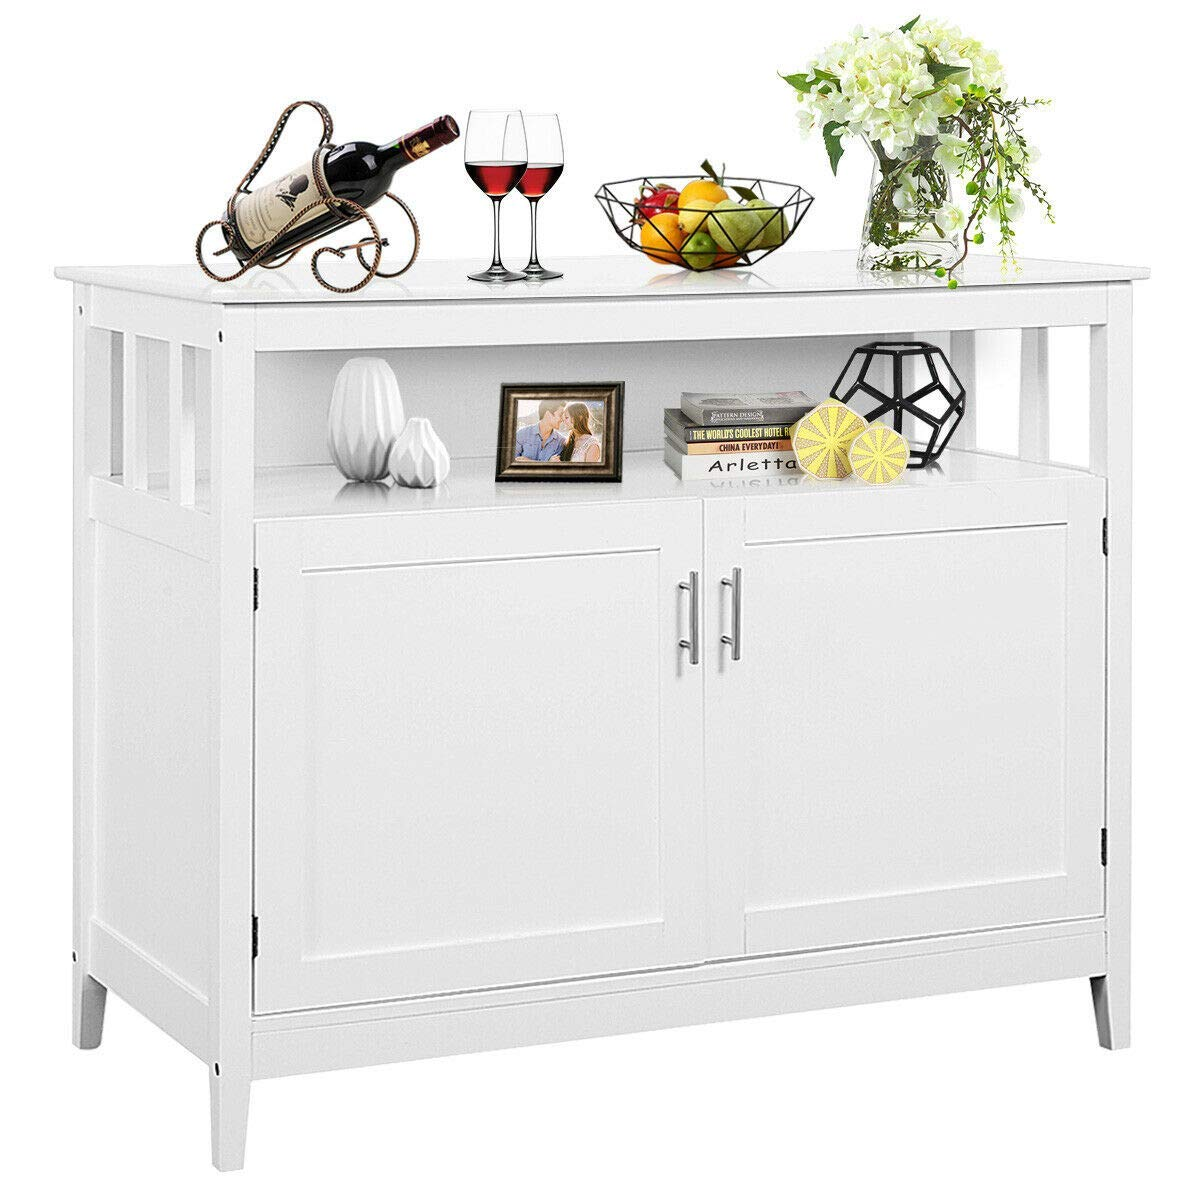 Costzon Kitchen Storage Sideboard Dining Buffet Server Cabinet Cupboard with Shelf (White) by Costzon